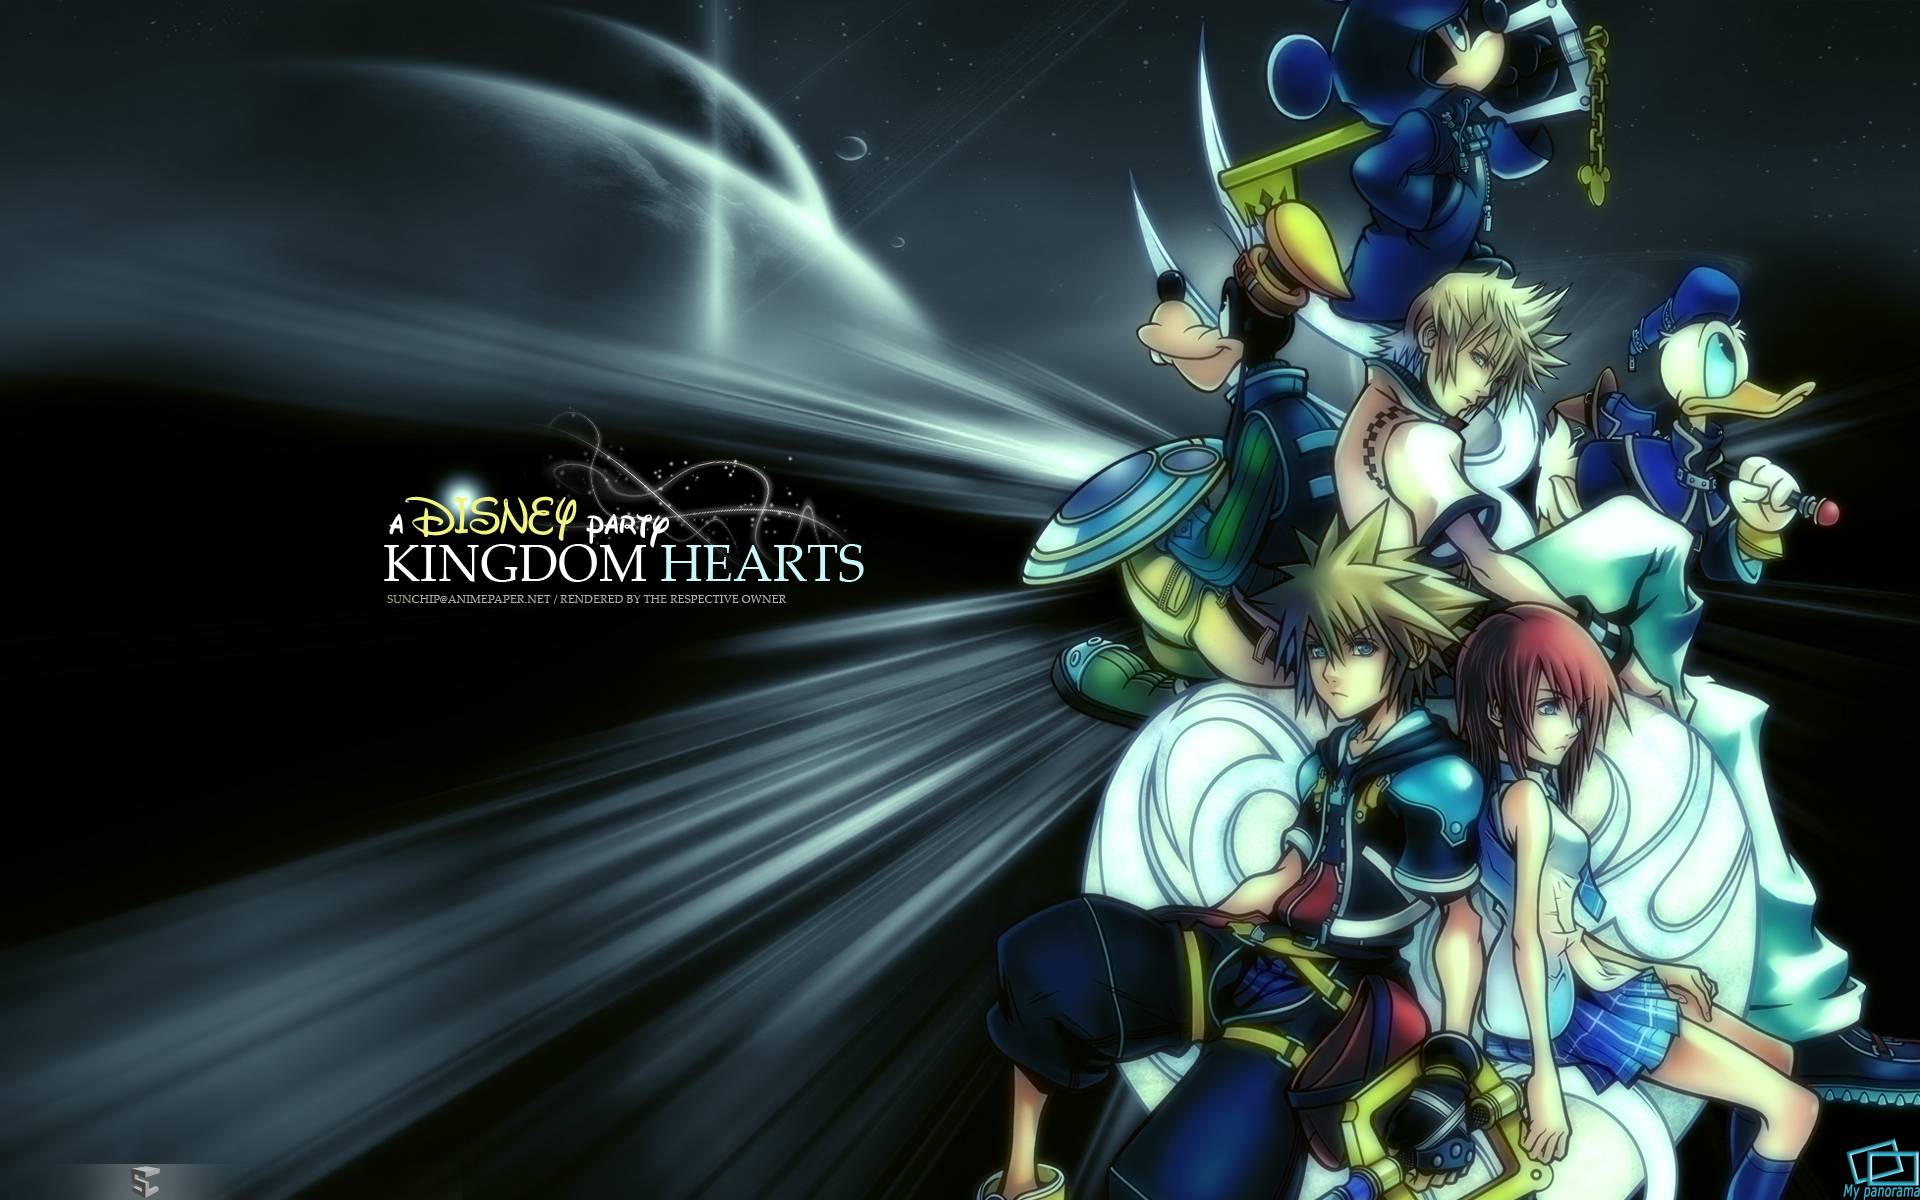 kingdom hearts 2 wallpapers kingdom hearts 2 background page 14